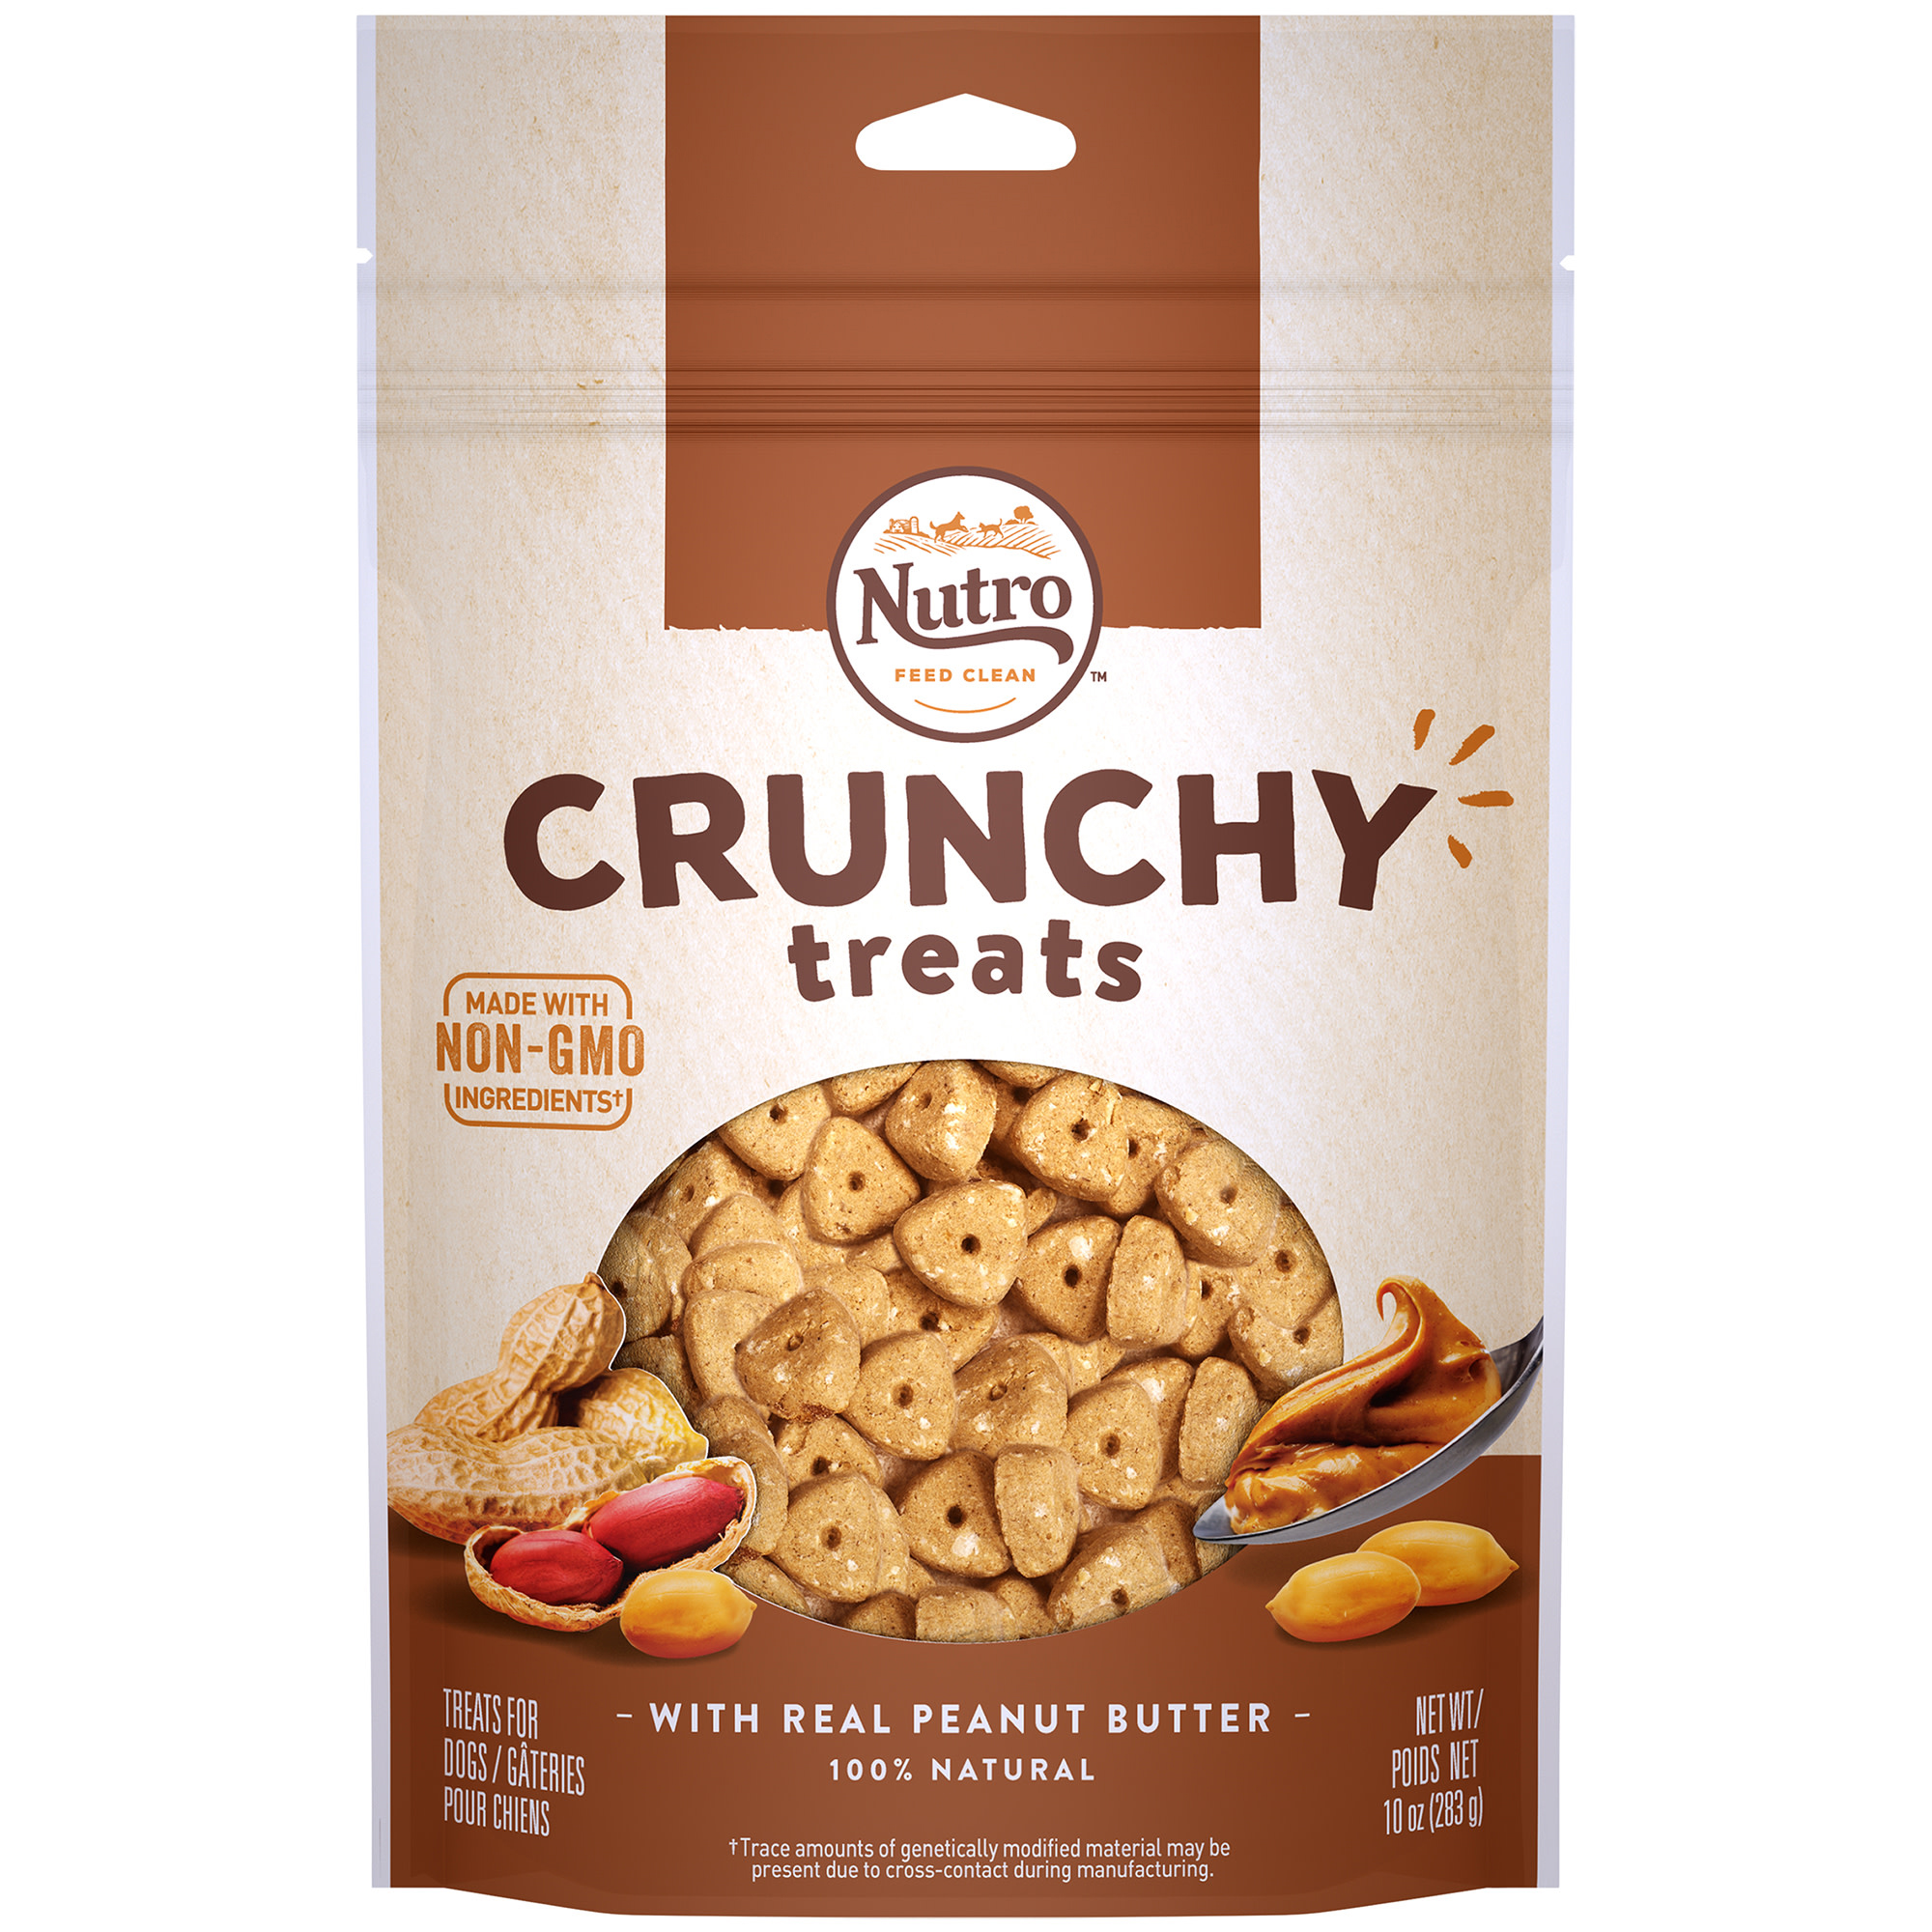 Nutro Crunchy Dog Treats with Real Peanut Butter, 10 Oz Bag by Mars Petcare Us